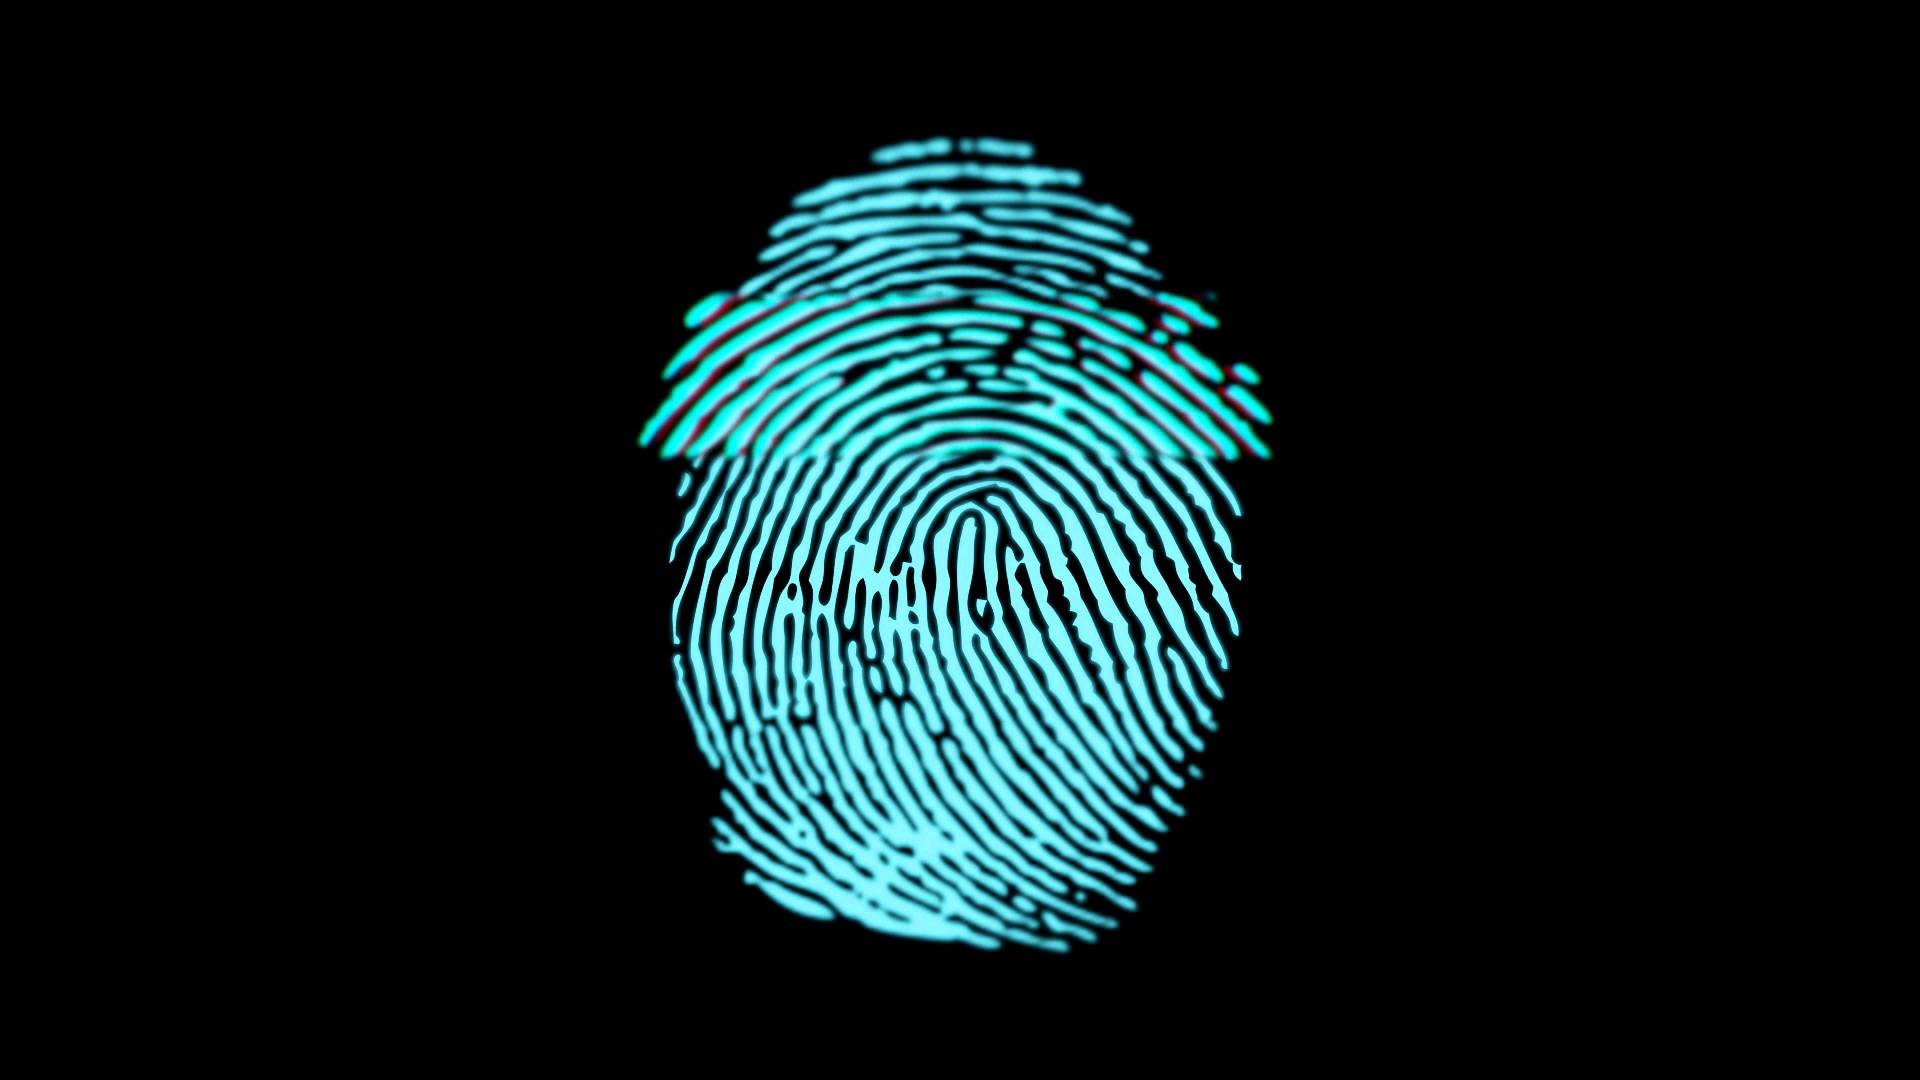 3 main problems with biometric security